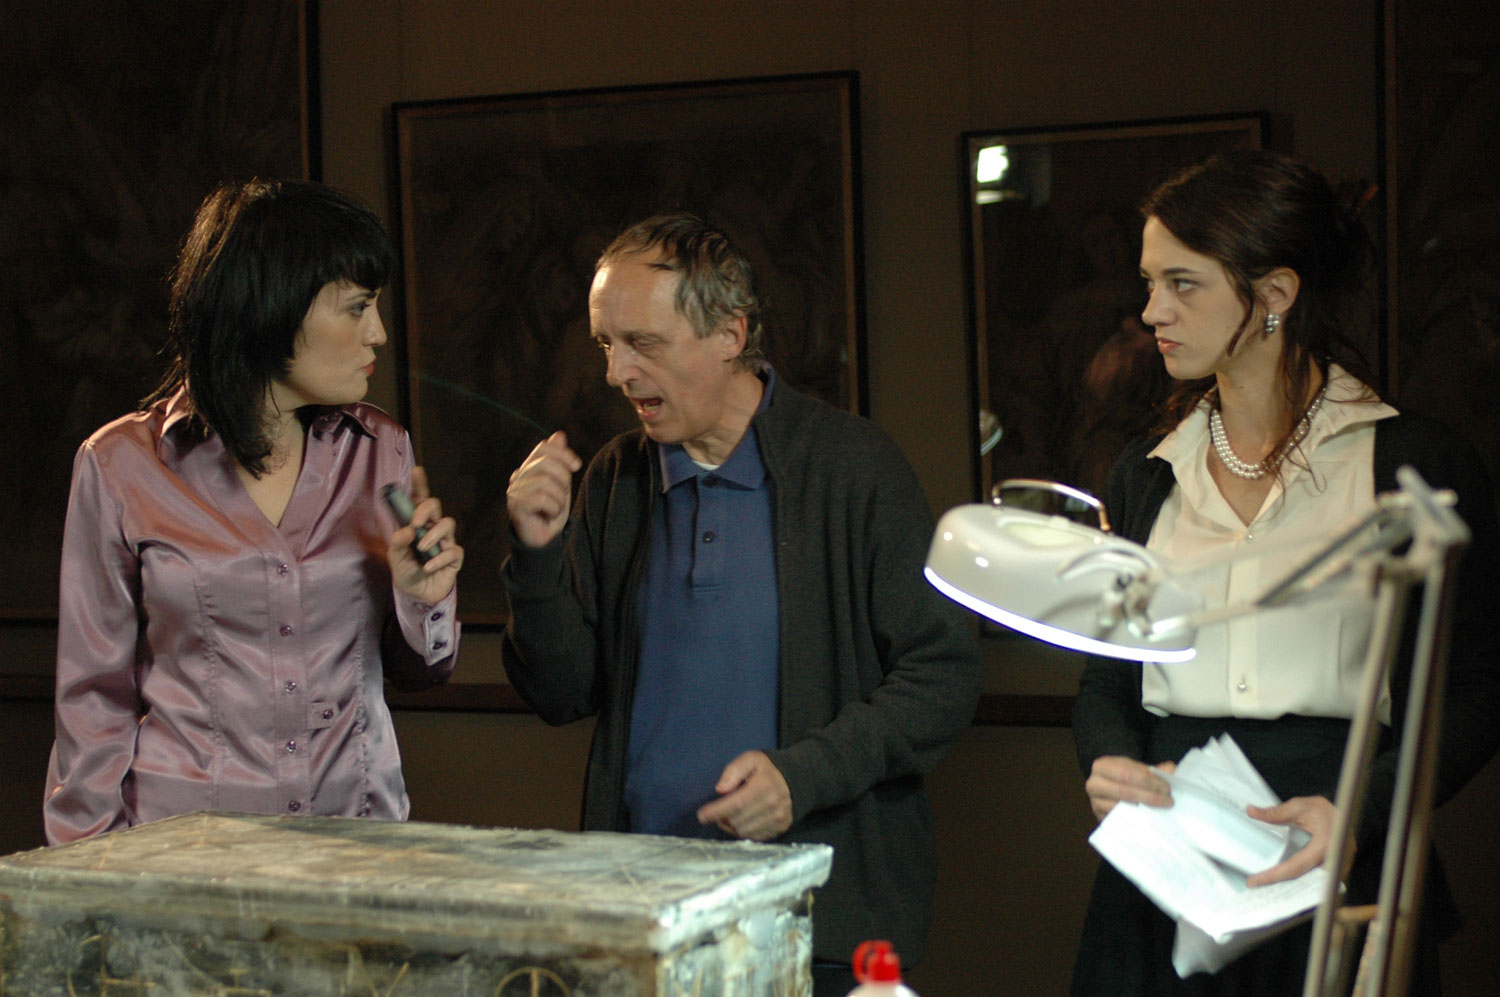 Coralina Cataldi-Tassoni  with Dario and Asia Argento on set of MOTHER OF TEARS